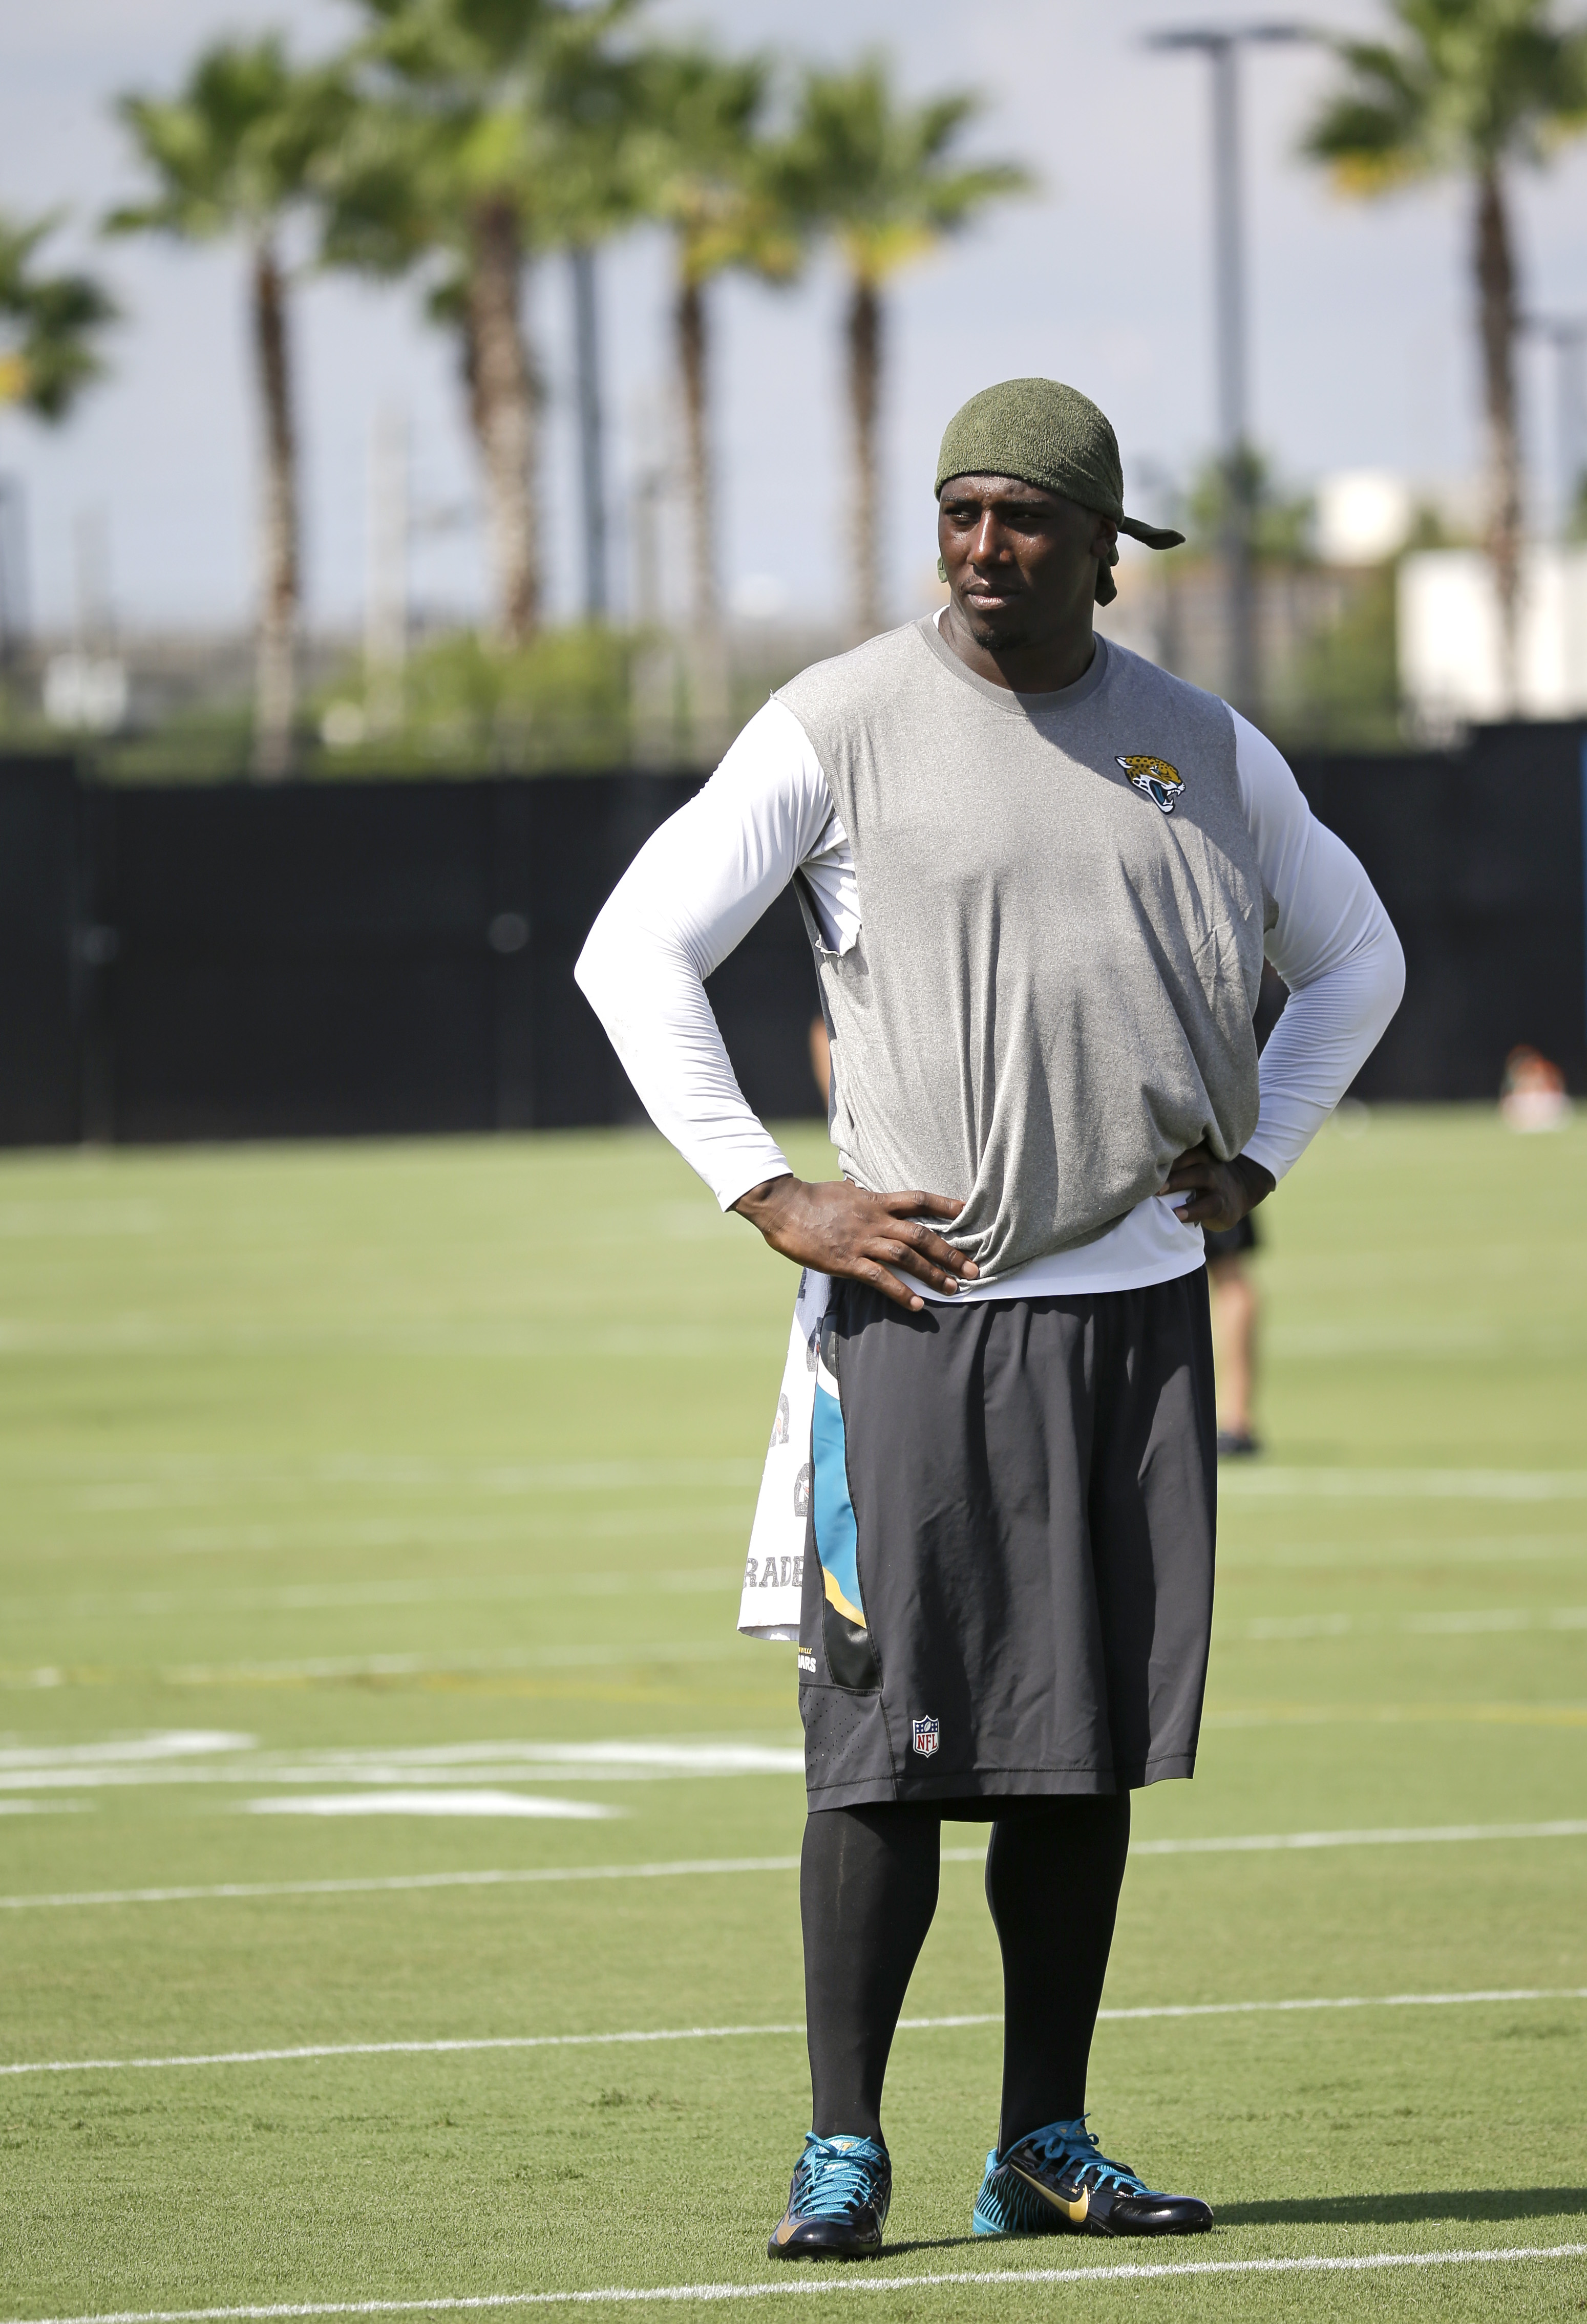 Jacksonville Jaguars defensive end Chris Clemons watches teammates during practice at NFL football training camp, Friday, July 31, 2015, in Jacksonville, Fla. Clemons arrived a day late for camp and did not practice Friday.(AP Photo/John Raoux)